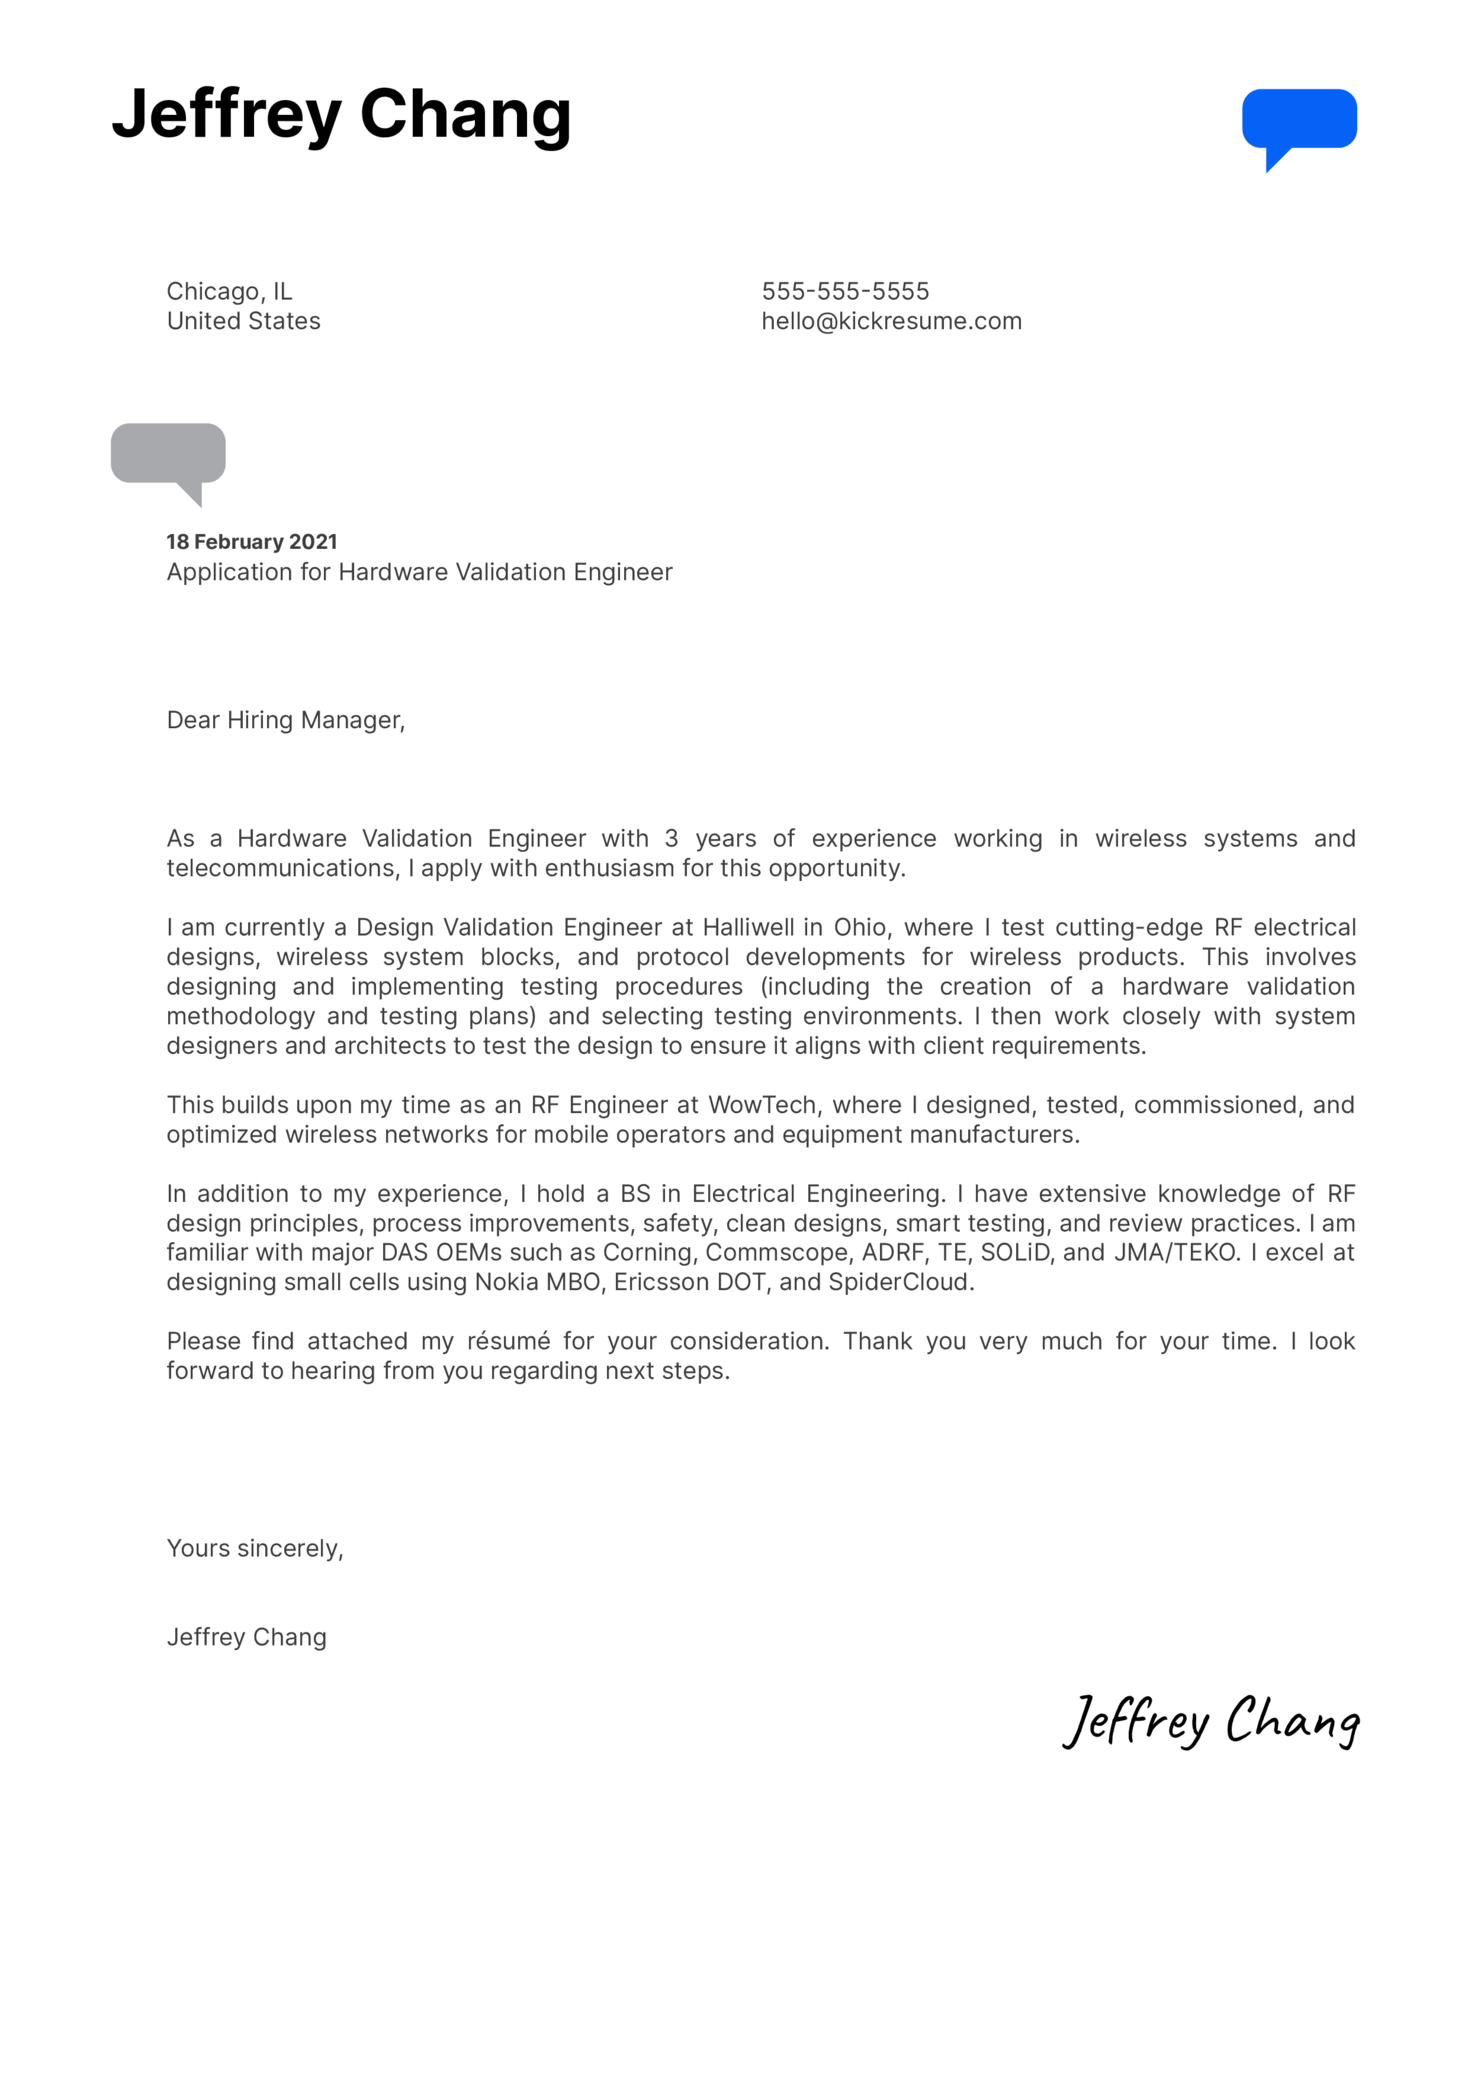 Hardware Validation Engineer Cover Letter Example